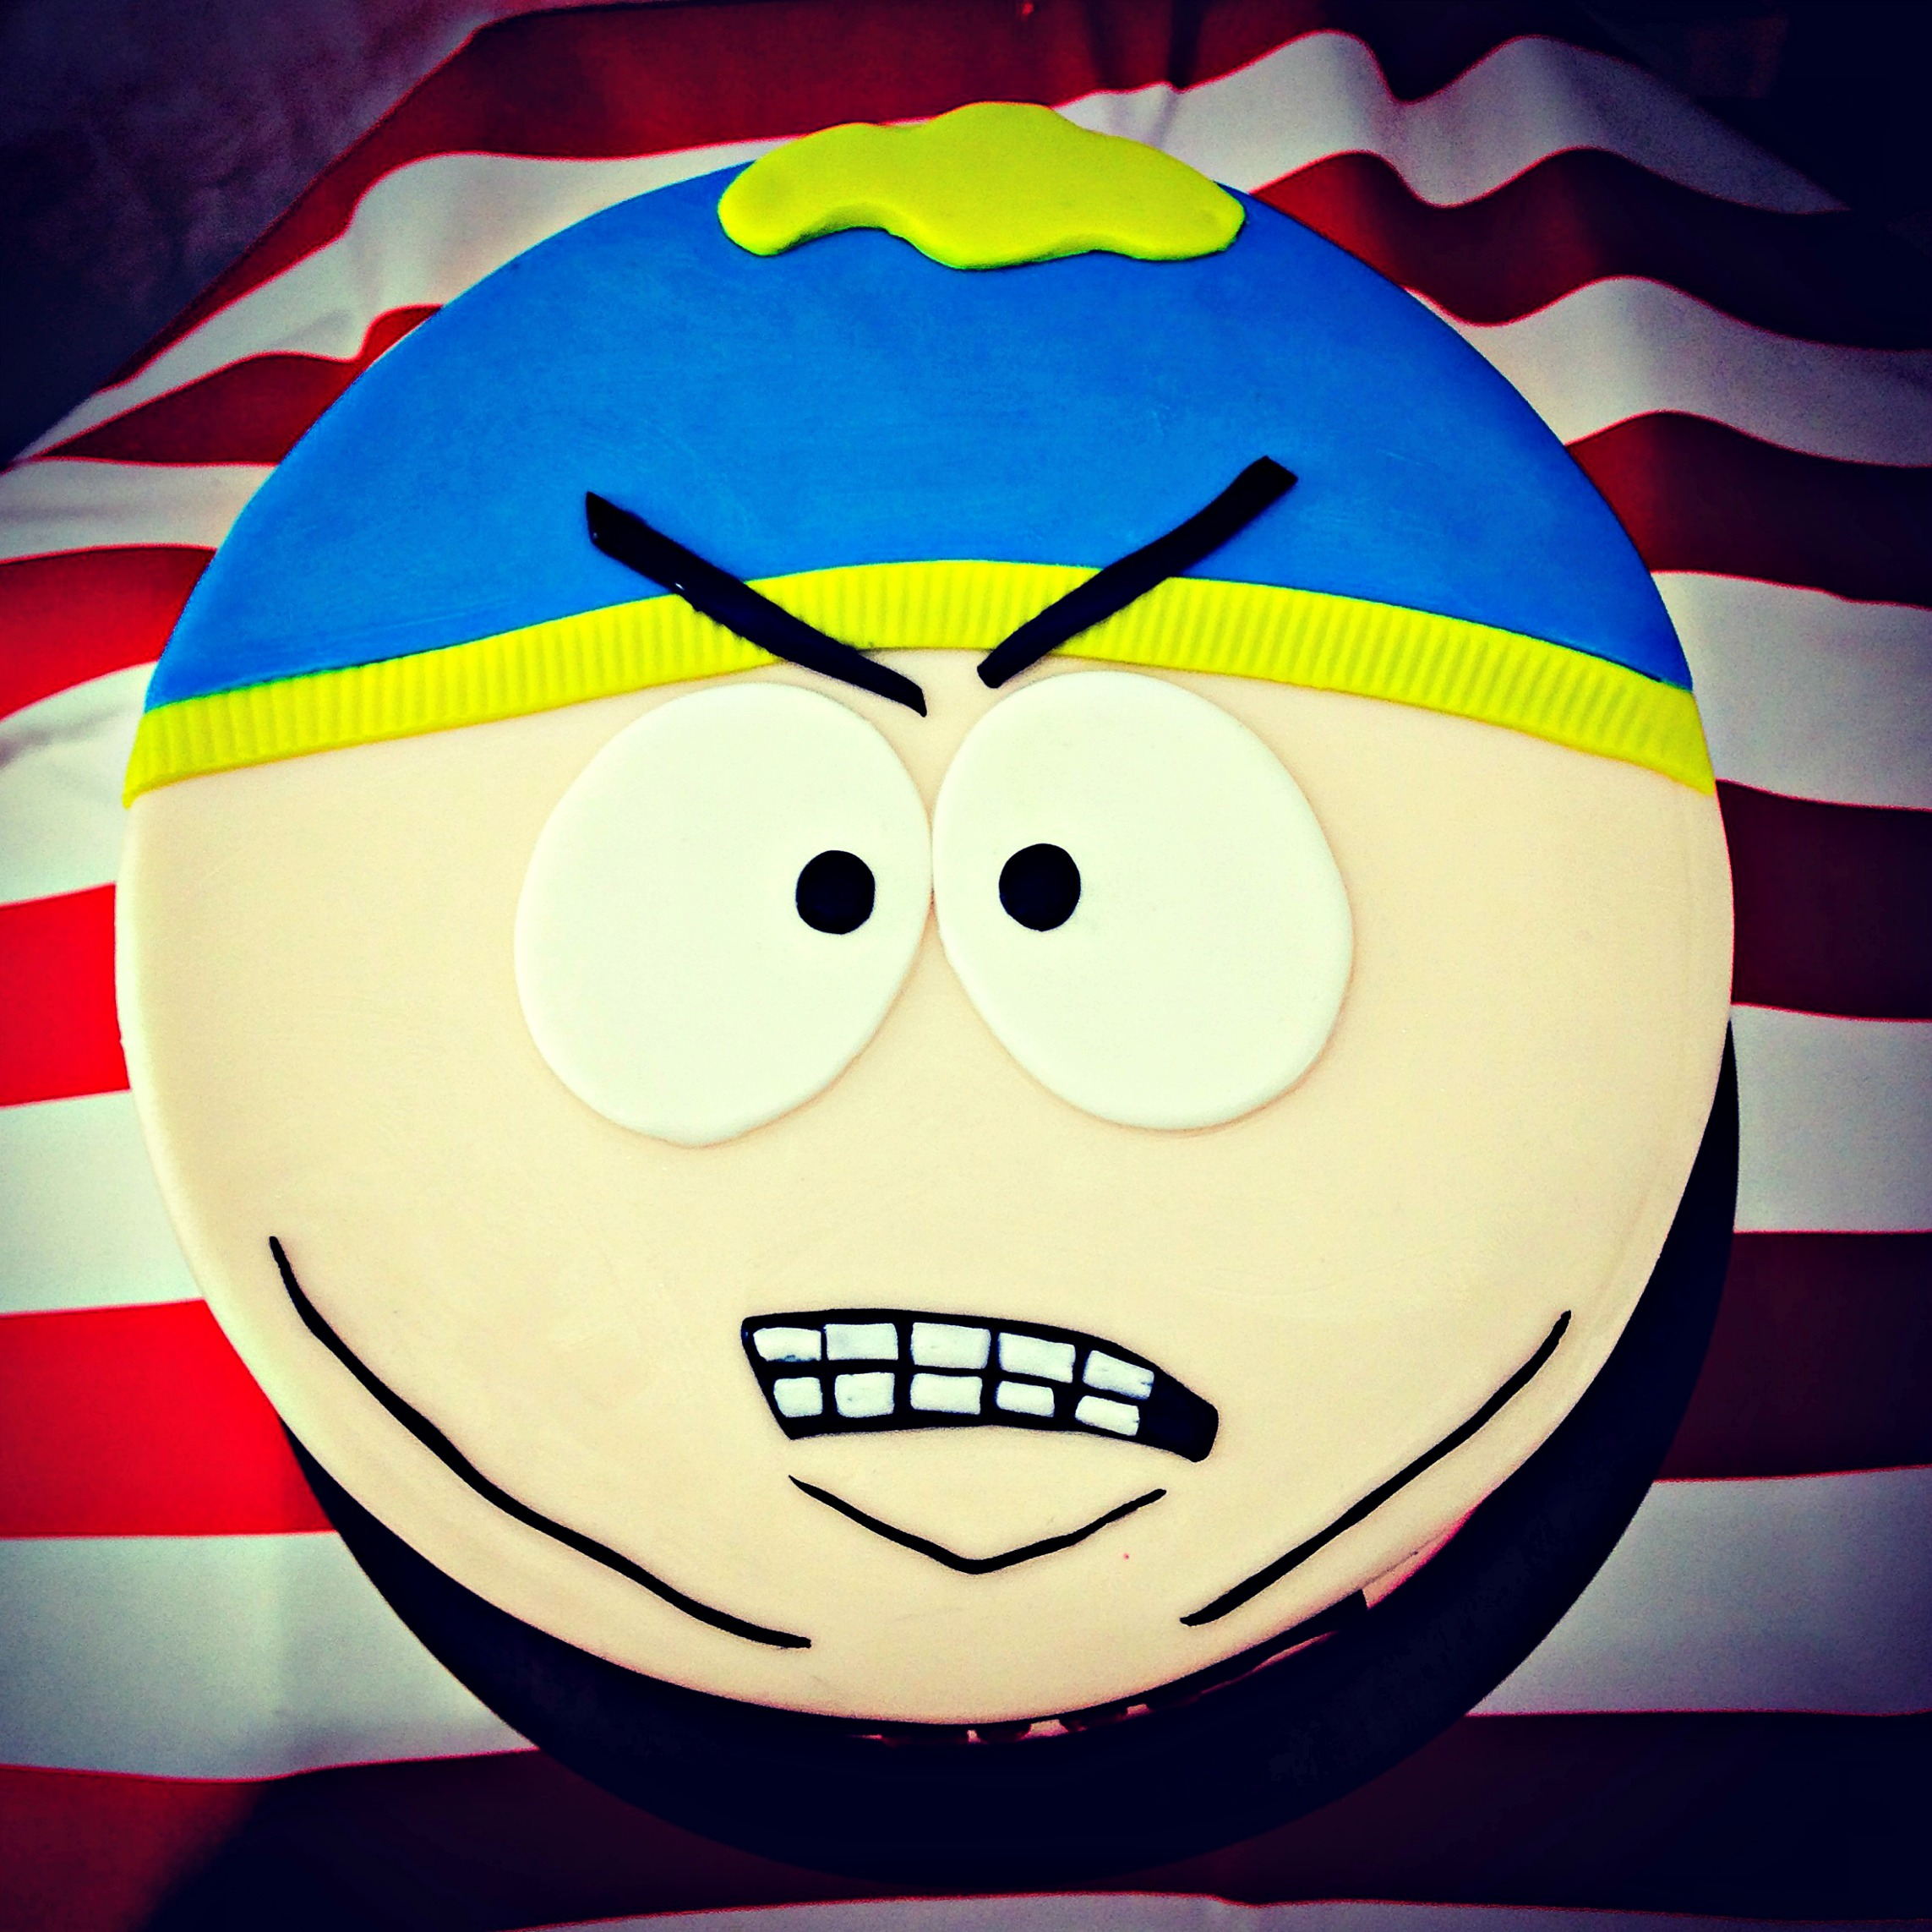 South Park Cartman Cake top view.JPG